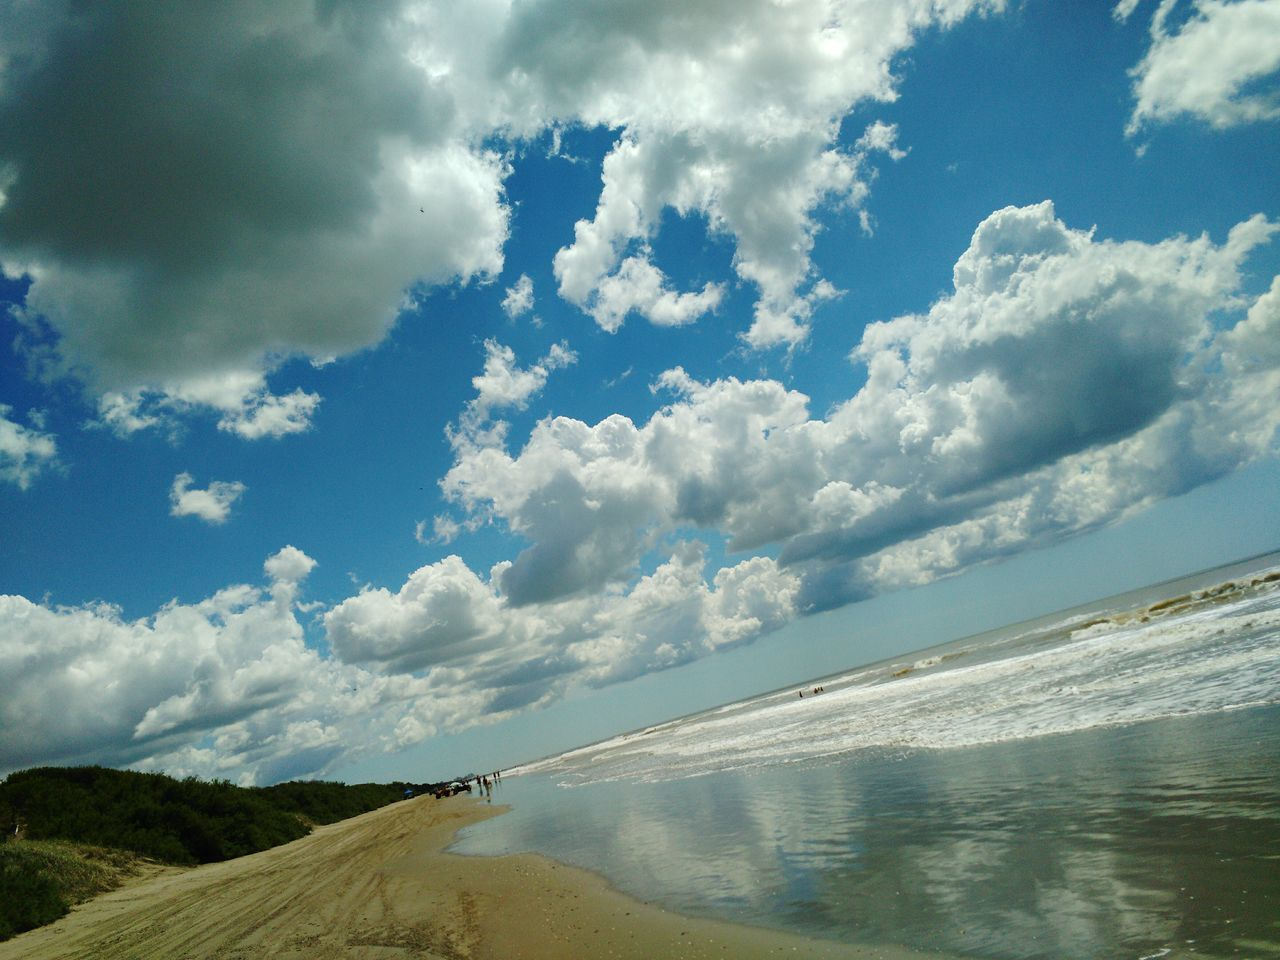 Cloud - Sky Sky Landscape Cloudscape Outdoors No People Nature Scenics Beach Beauty In Nature Water Day Sky_collection Buenos Aires, Argentina  Having A Good Time Sea_collection Buenos Aires, Argentina  Full Length Seascape Shore Nature_collection Vacations Having Fun With Photography Reflection